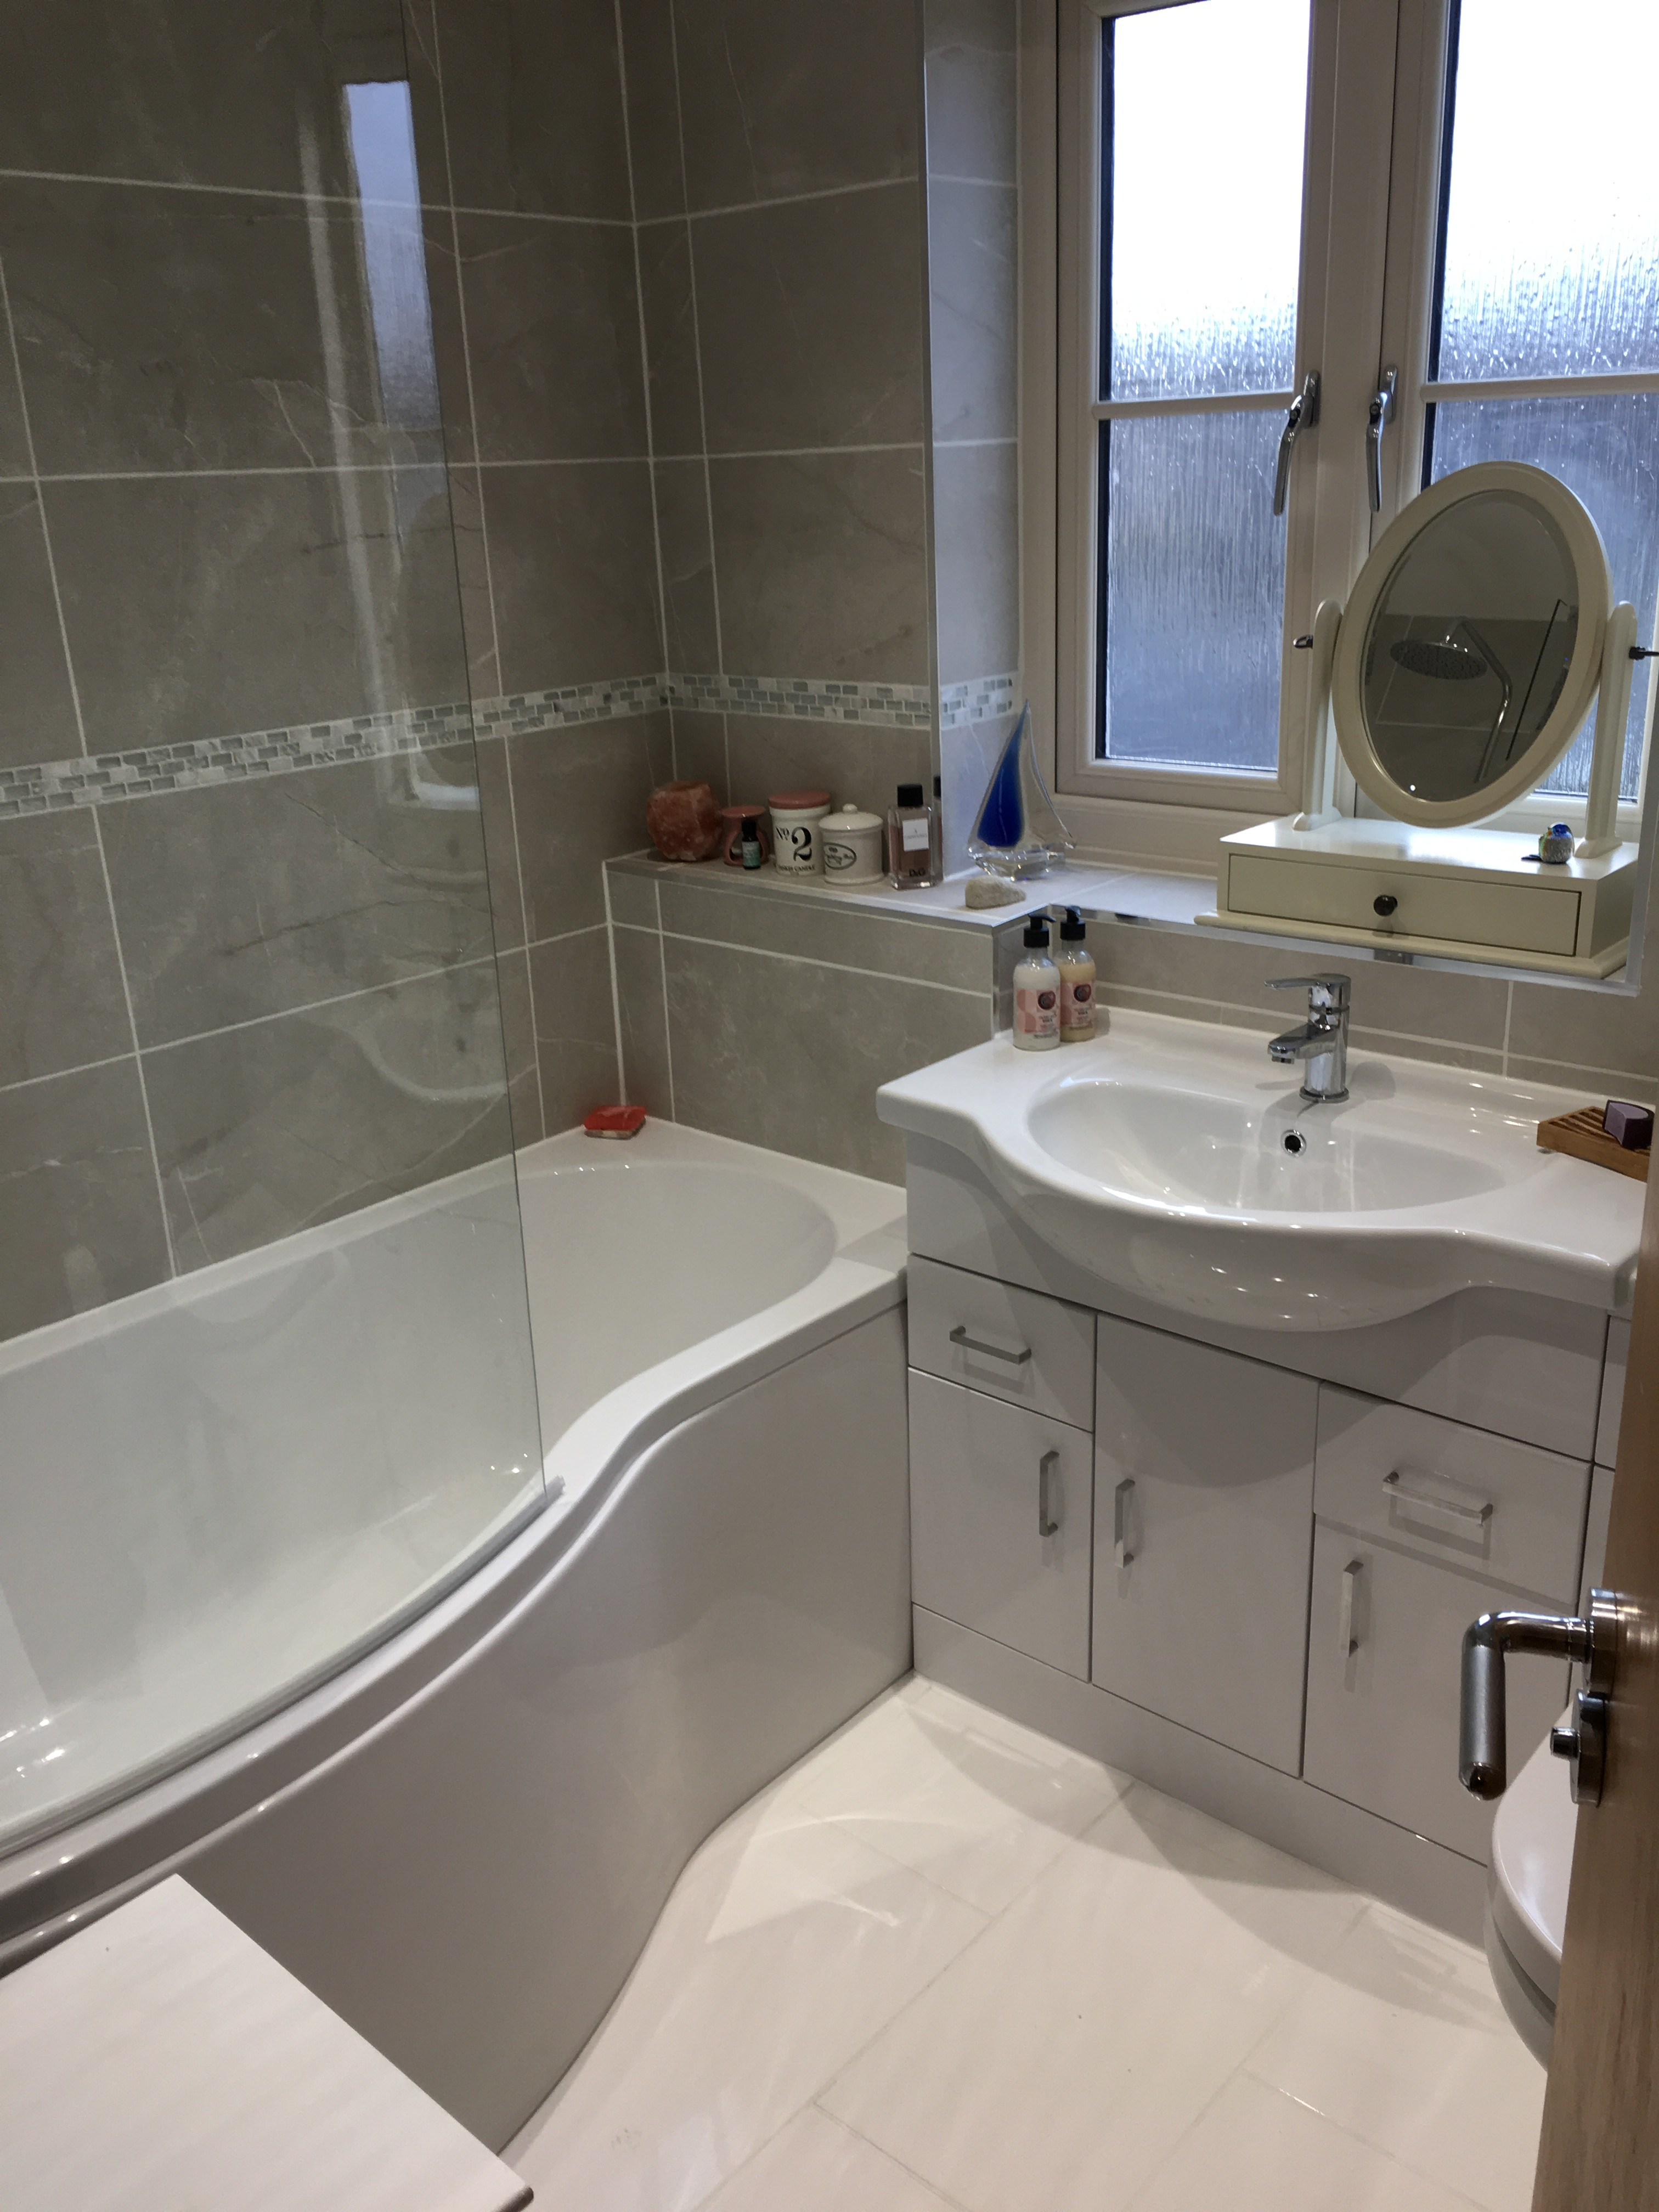 White Units To Match The P Shape Bath And Floor Tiles We Also Ed Four Down Lights In Ceiling Think It Worked Very Well